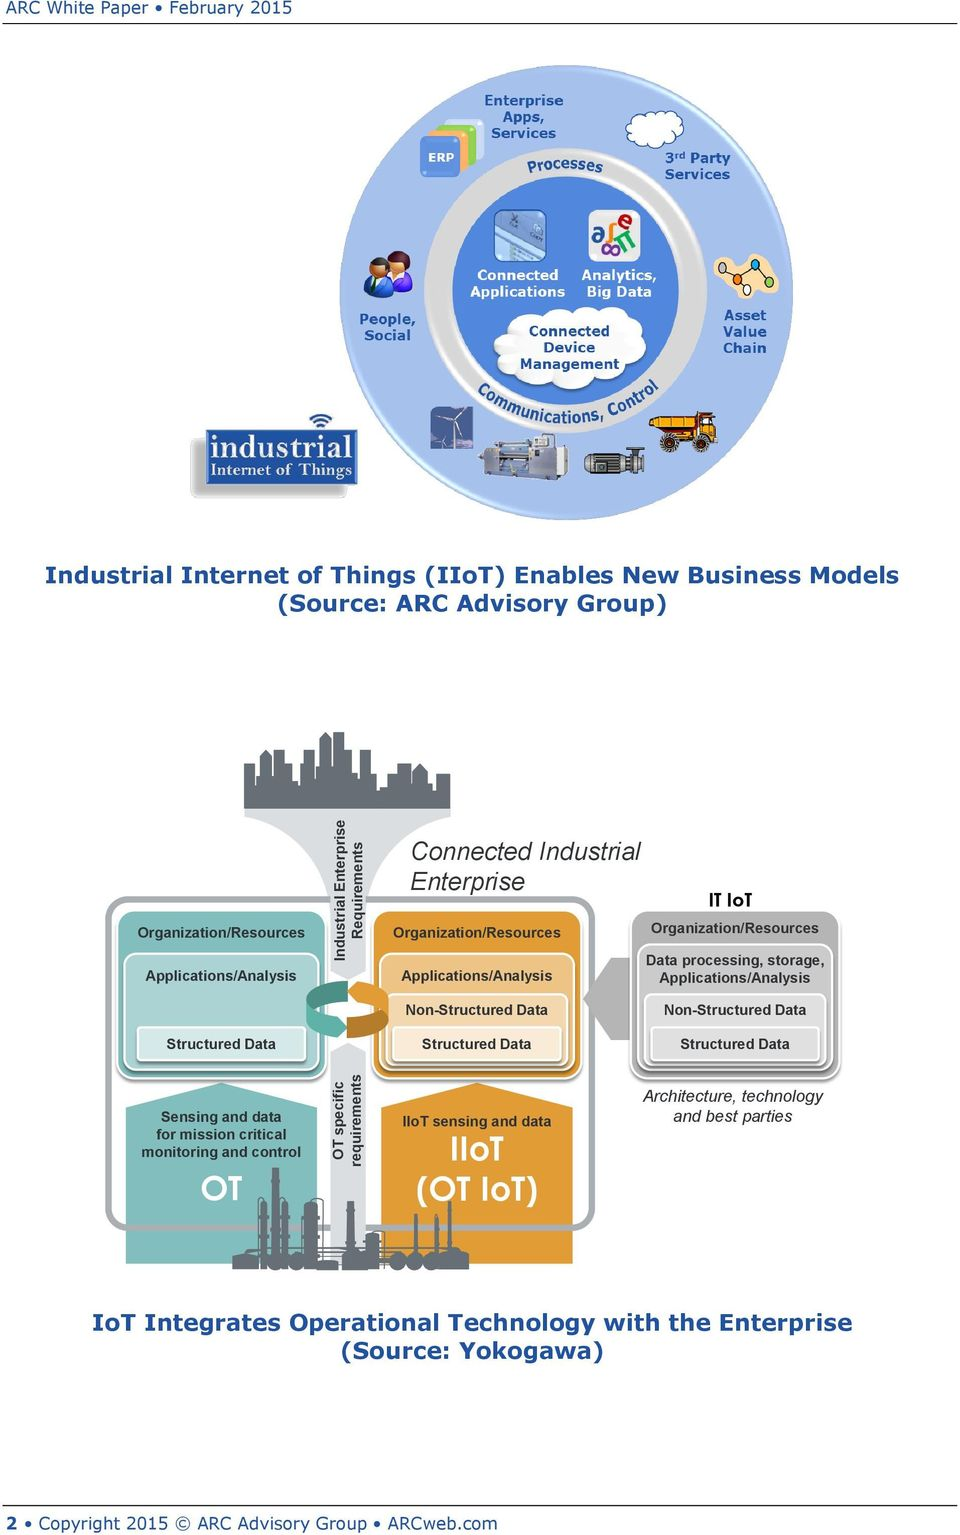 Applications/Analysis Structured Data Non-Structured Data Structured Data Non-Structured Data Structured Data Sensing and data for mission critical monitoring and control OT IIoT